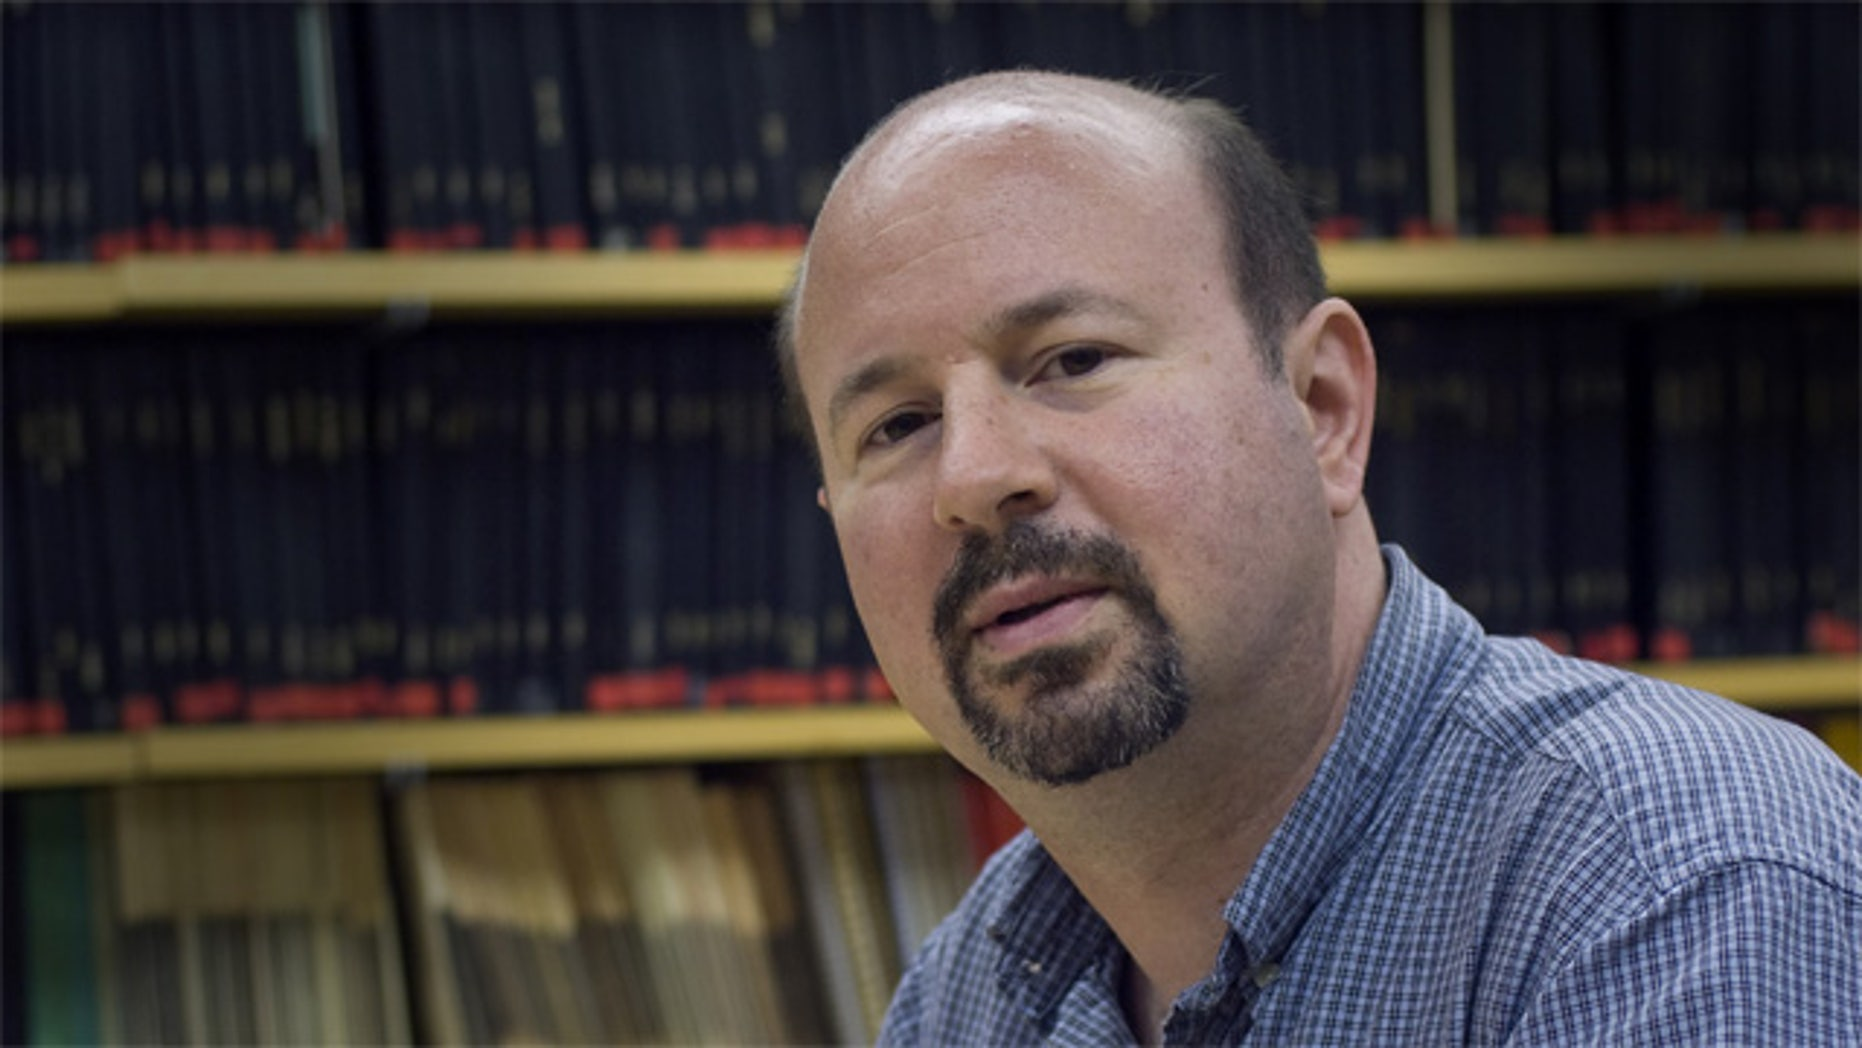 American physicist and climatologist Michael Mann has been cleared of wrongdoing by the NSF.